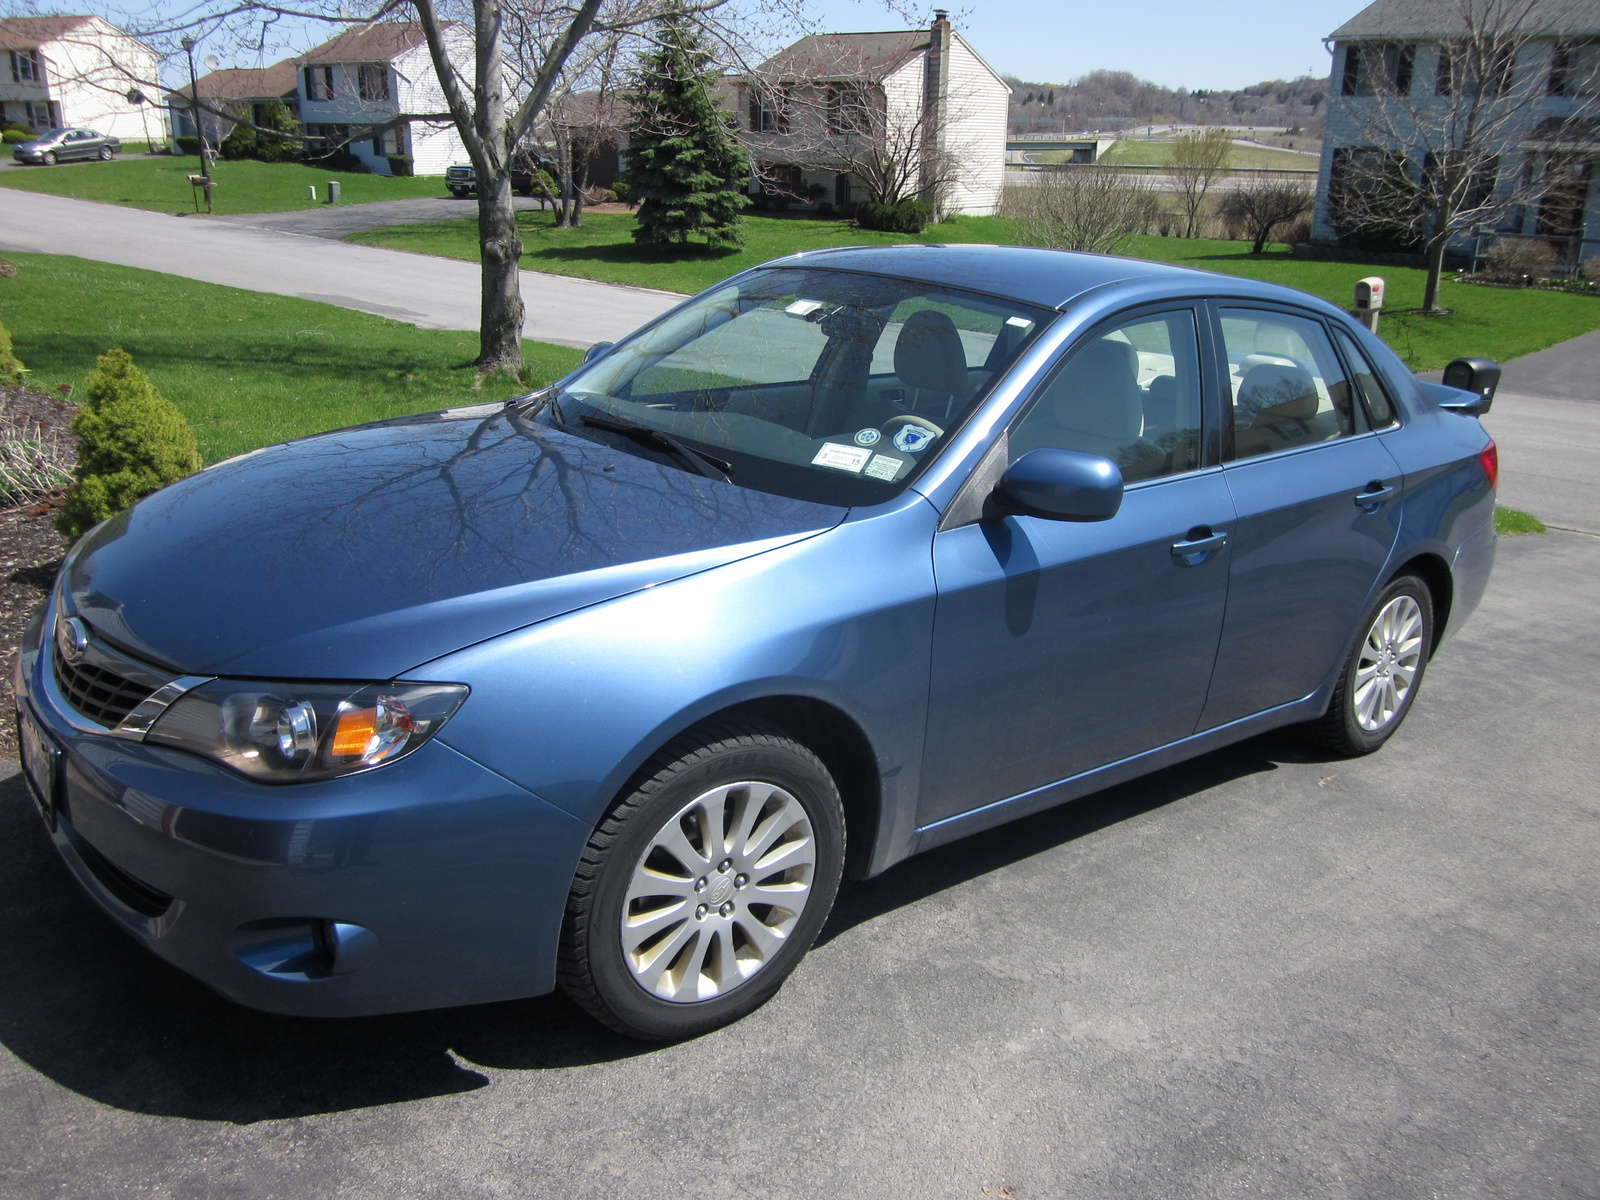 2008 subaru impreza wrx sti for sale cargurus. Black Bedroom Furniture Sets. Home Design Ideas